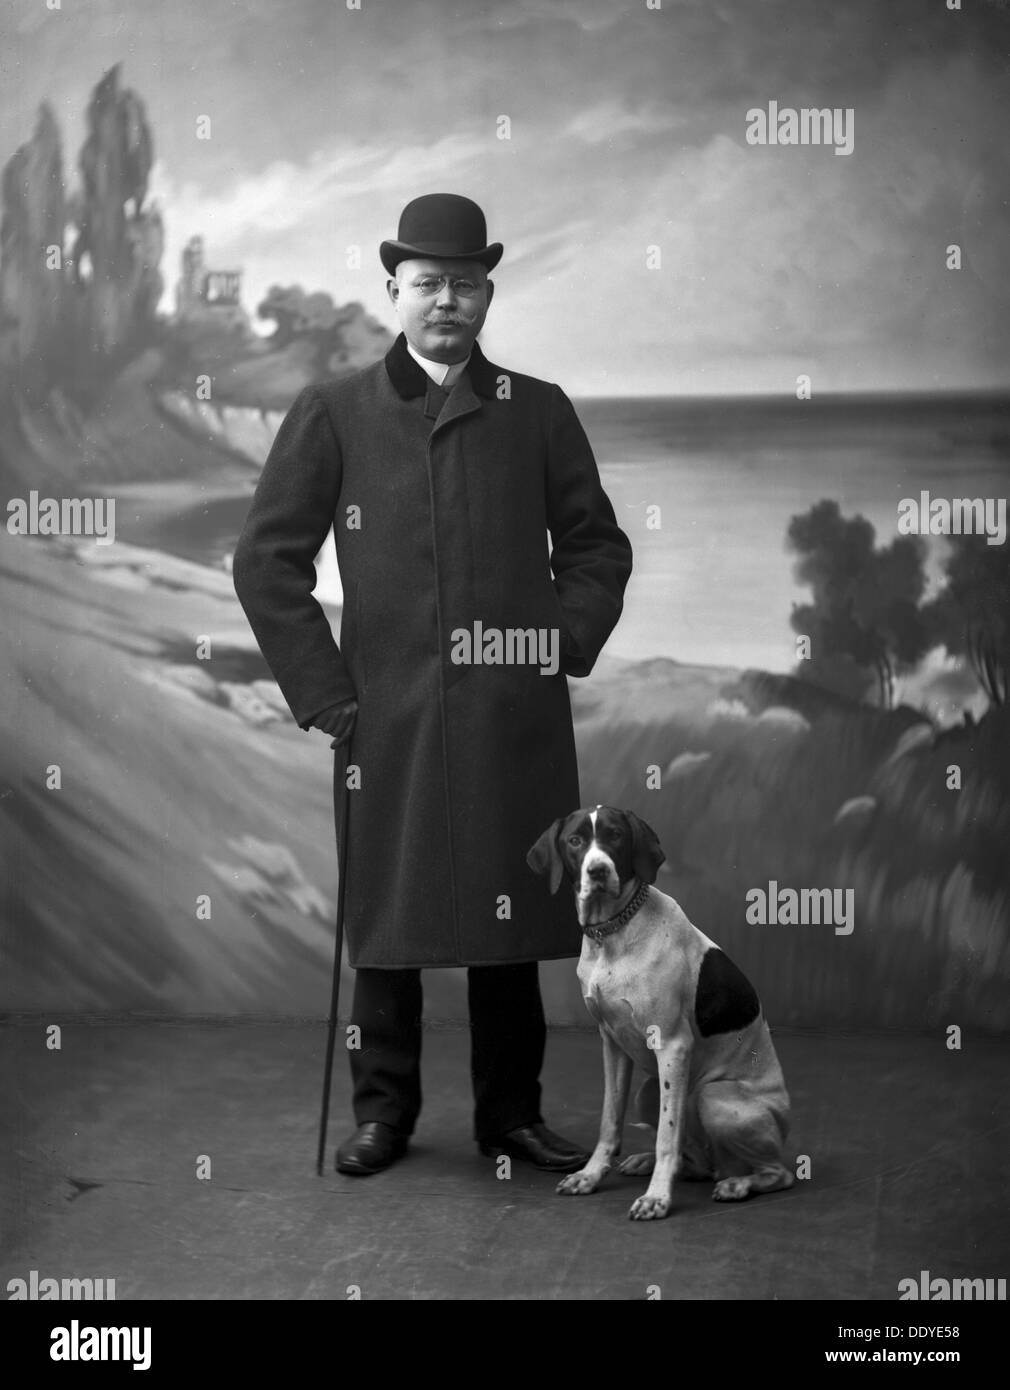 An elegant man wearing a black overcoat and a bowler hat posing with his dog in a photographer's studio, Landskrona, Sweden, 1910. From the Landskrona Museum Collection. - Stock Image